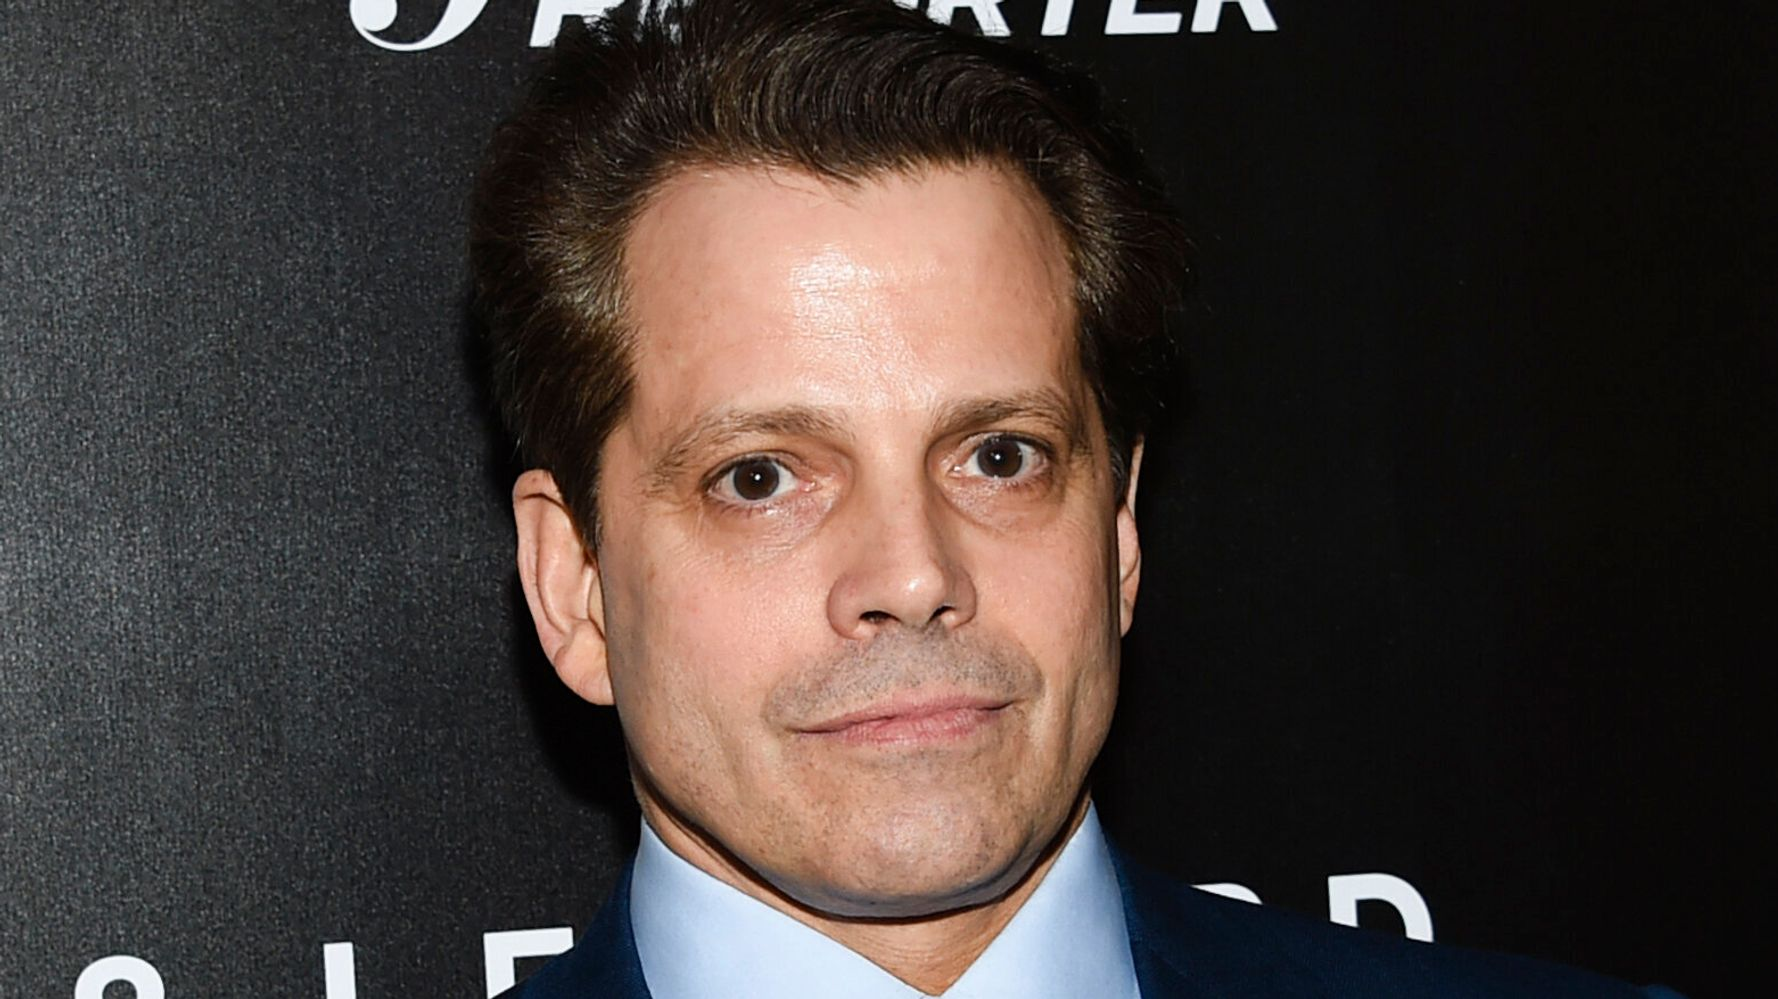 Anthony Scaramucci Predicts Exact Month Donald Trump Will Abandon 2020 Race